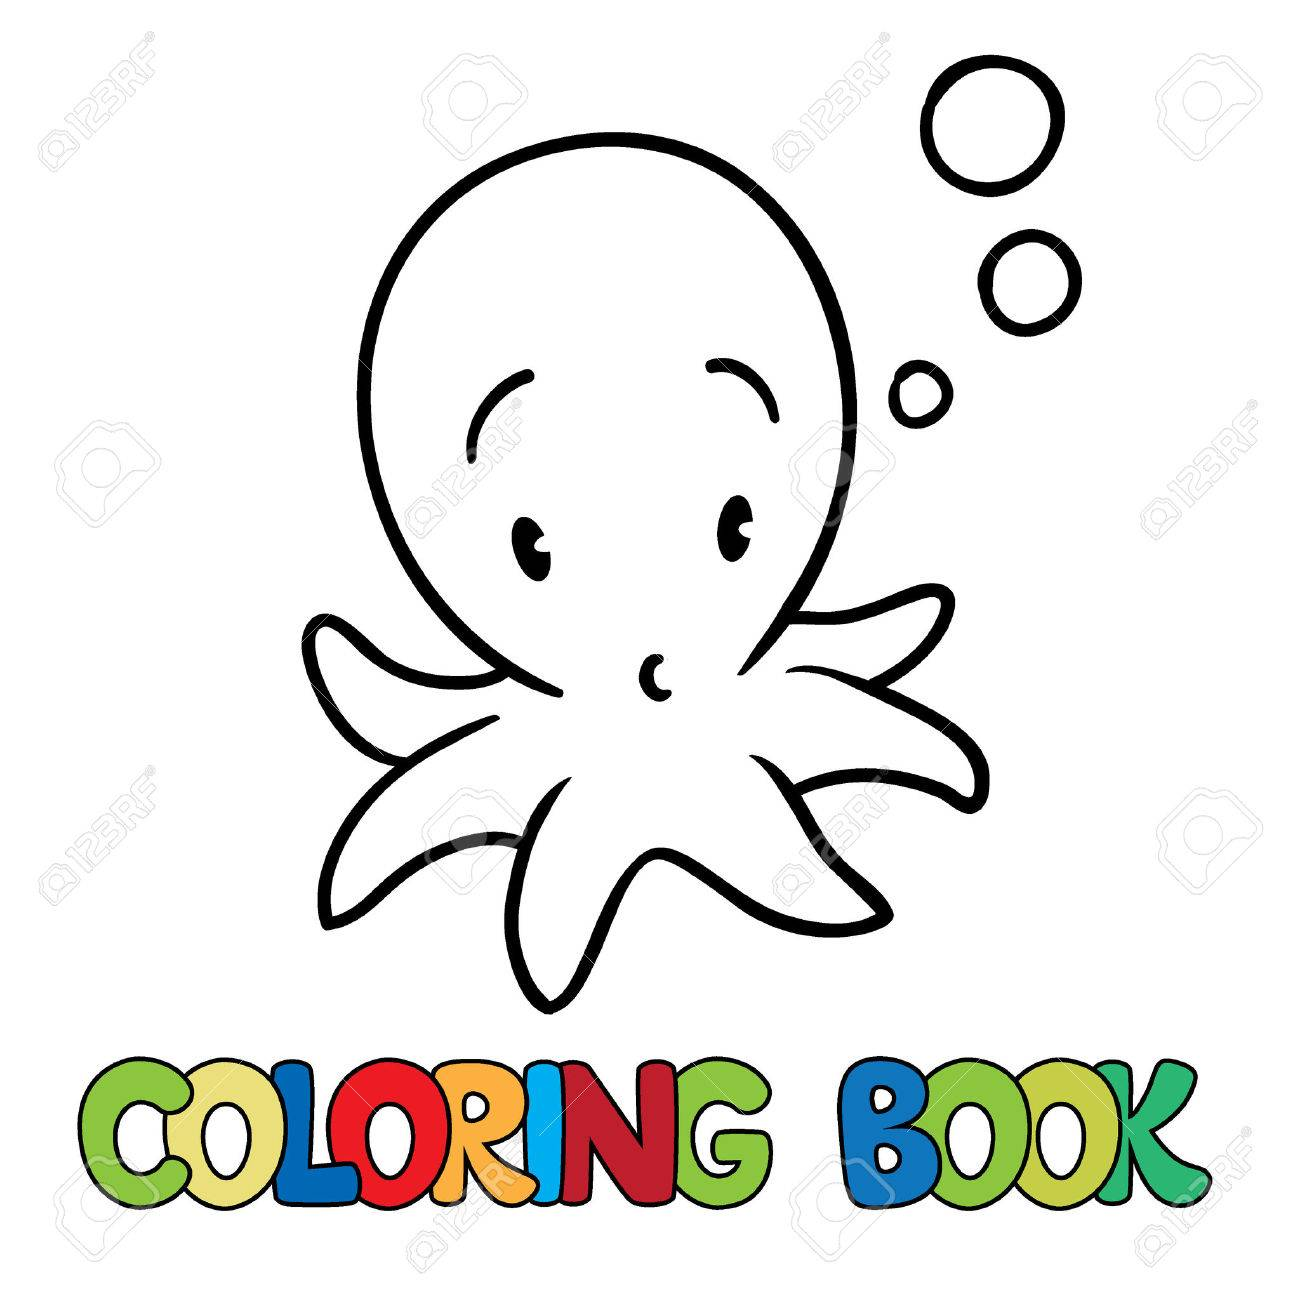 Coloring Book Or Coloring Picture Of Funny Little Octopus Royalty ...